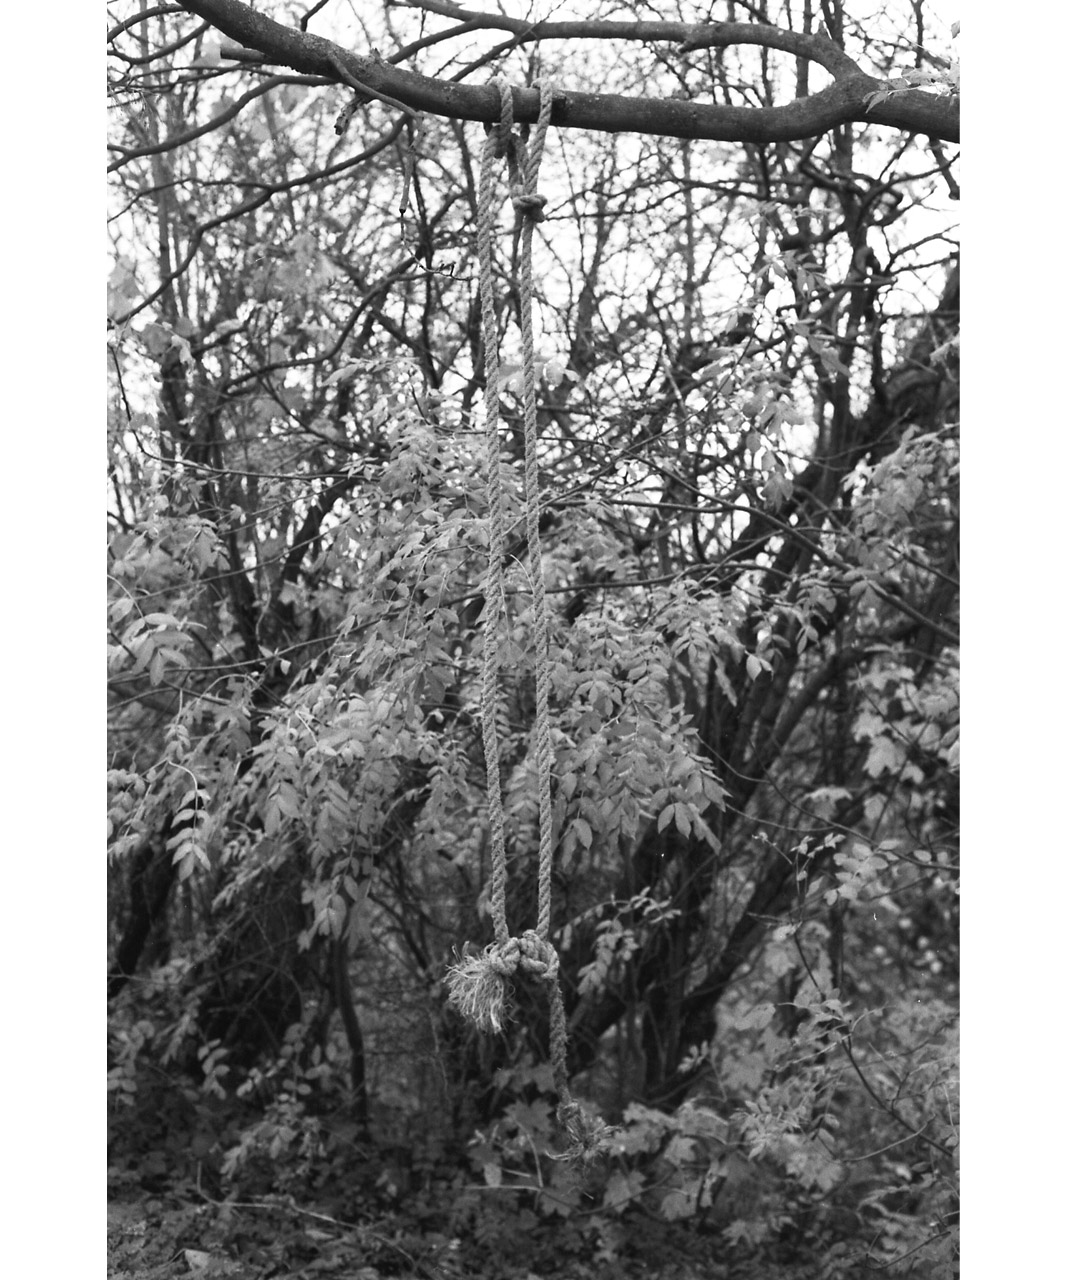 UNTITLED (Rope), (2011) b&w photography, 60 x 50 cm, Edition of 2